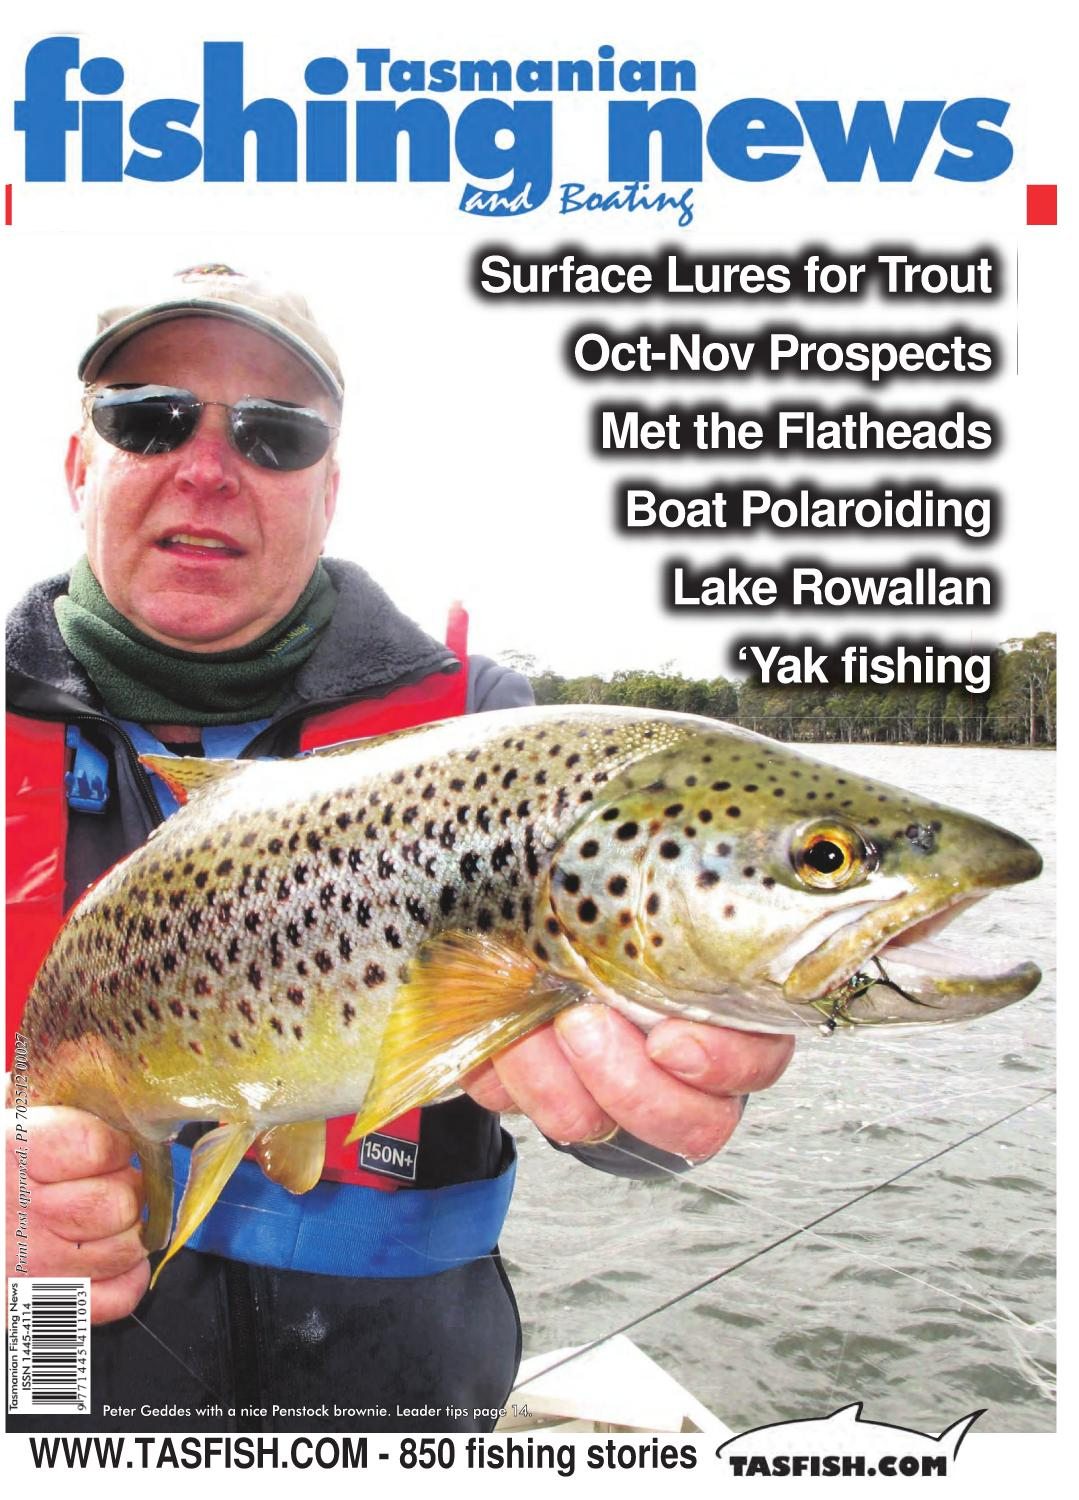 Fishing Angling Trout Fly Leaders.8lb 15ft 1 Dropper x 3